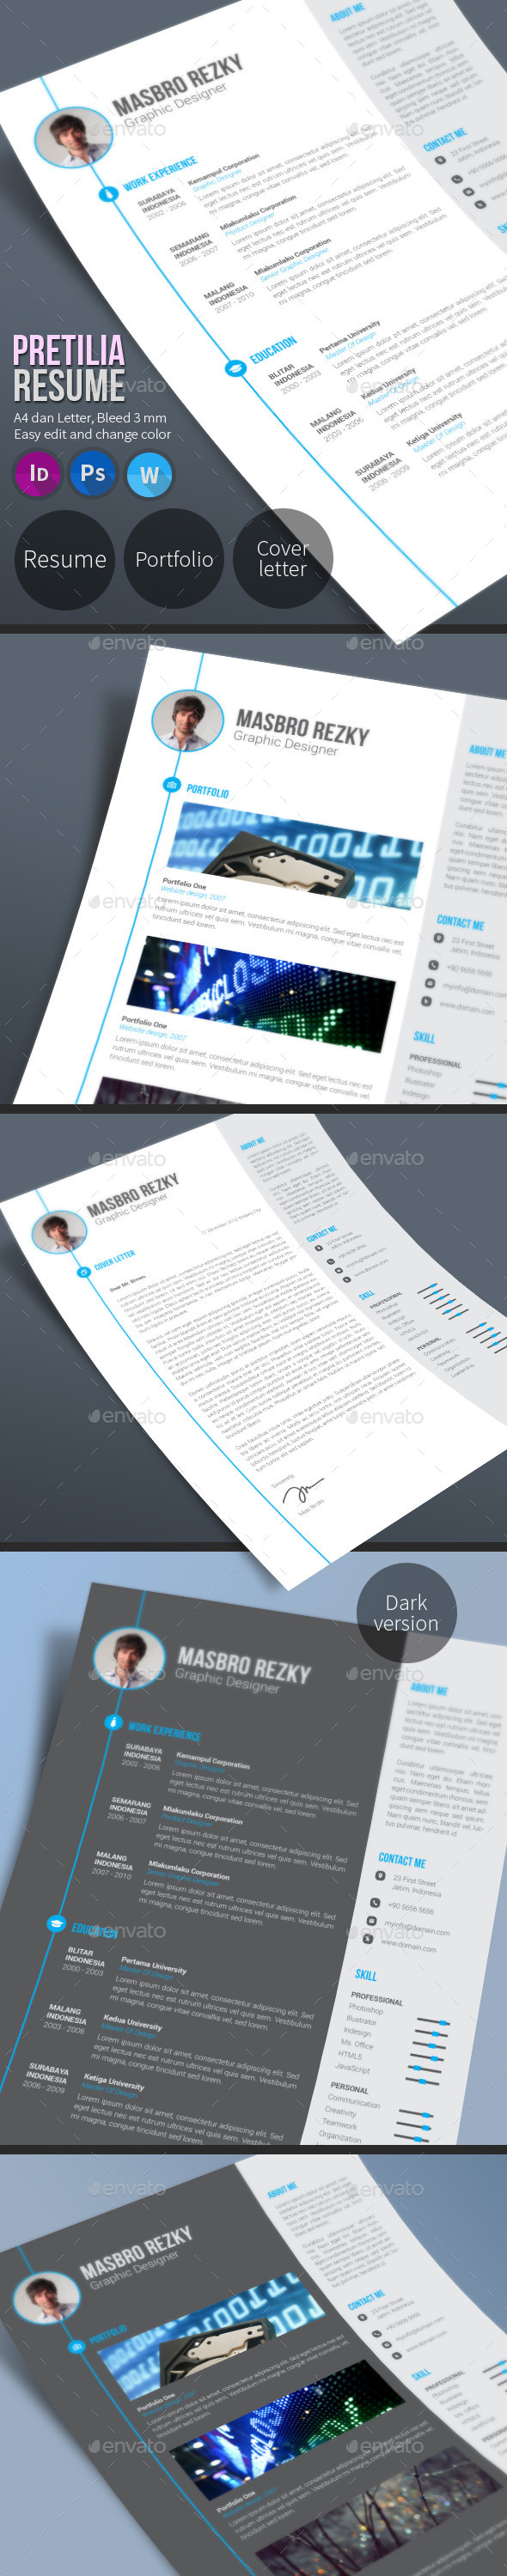 GraphicRiver Pretilia Resume 10369865